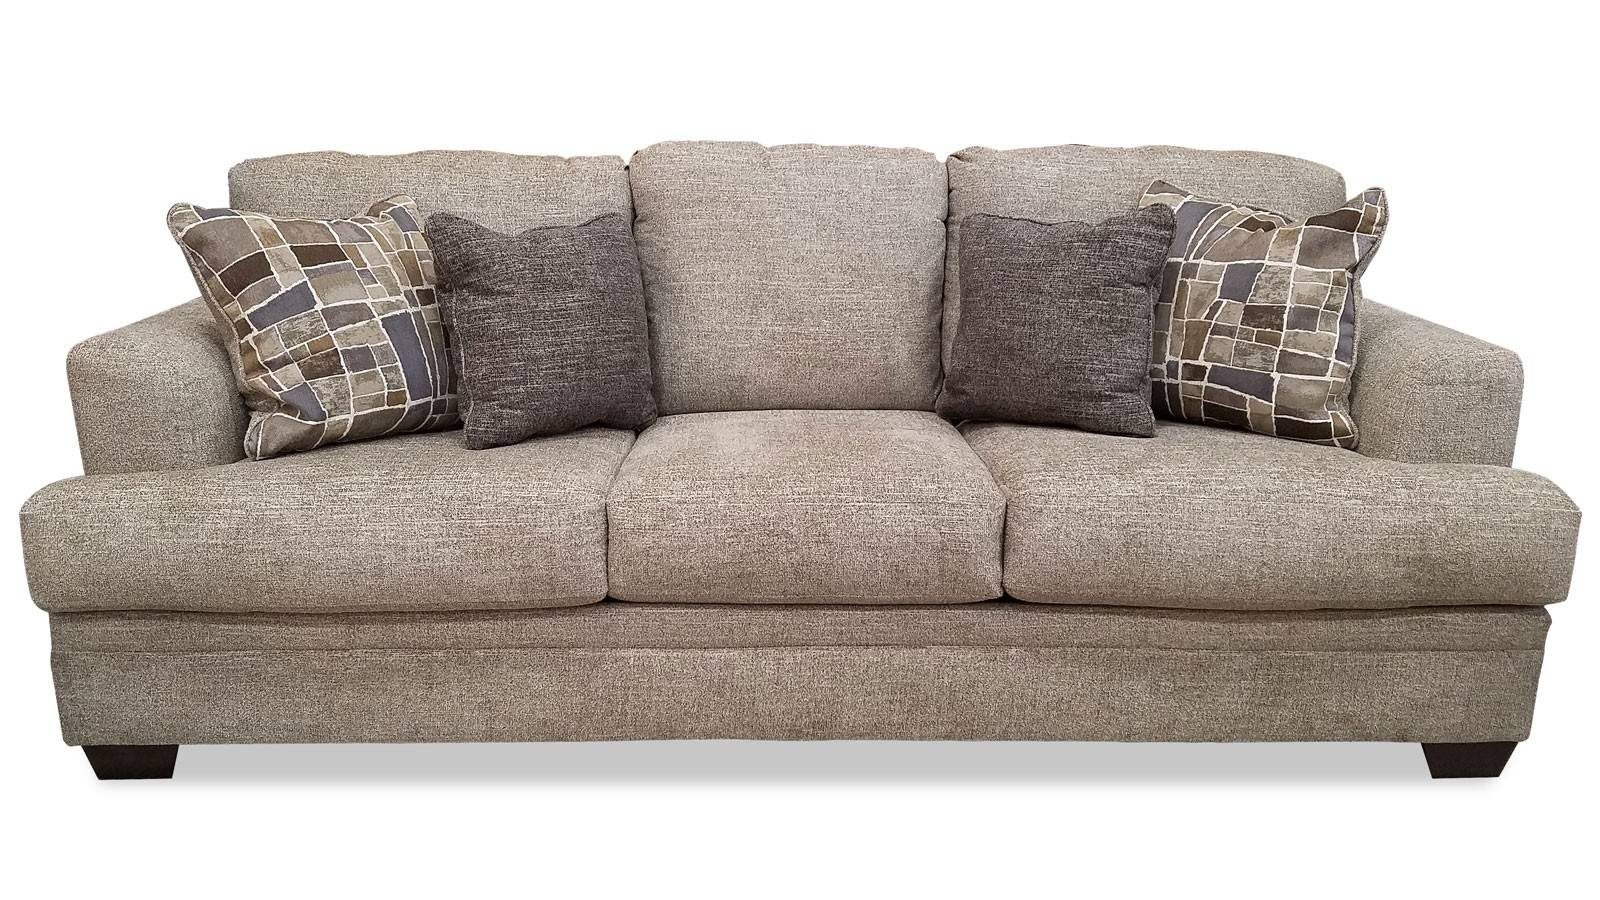 Living Room Sofas | Gallery Furniture with 6 Foot Sofas (Image 9 of 30)